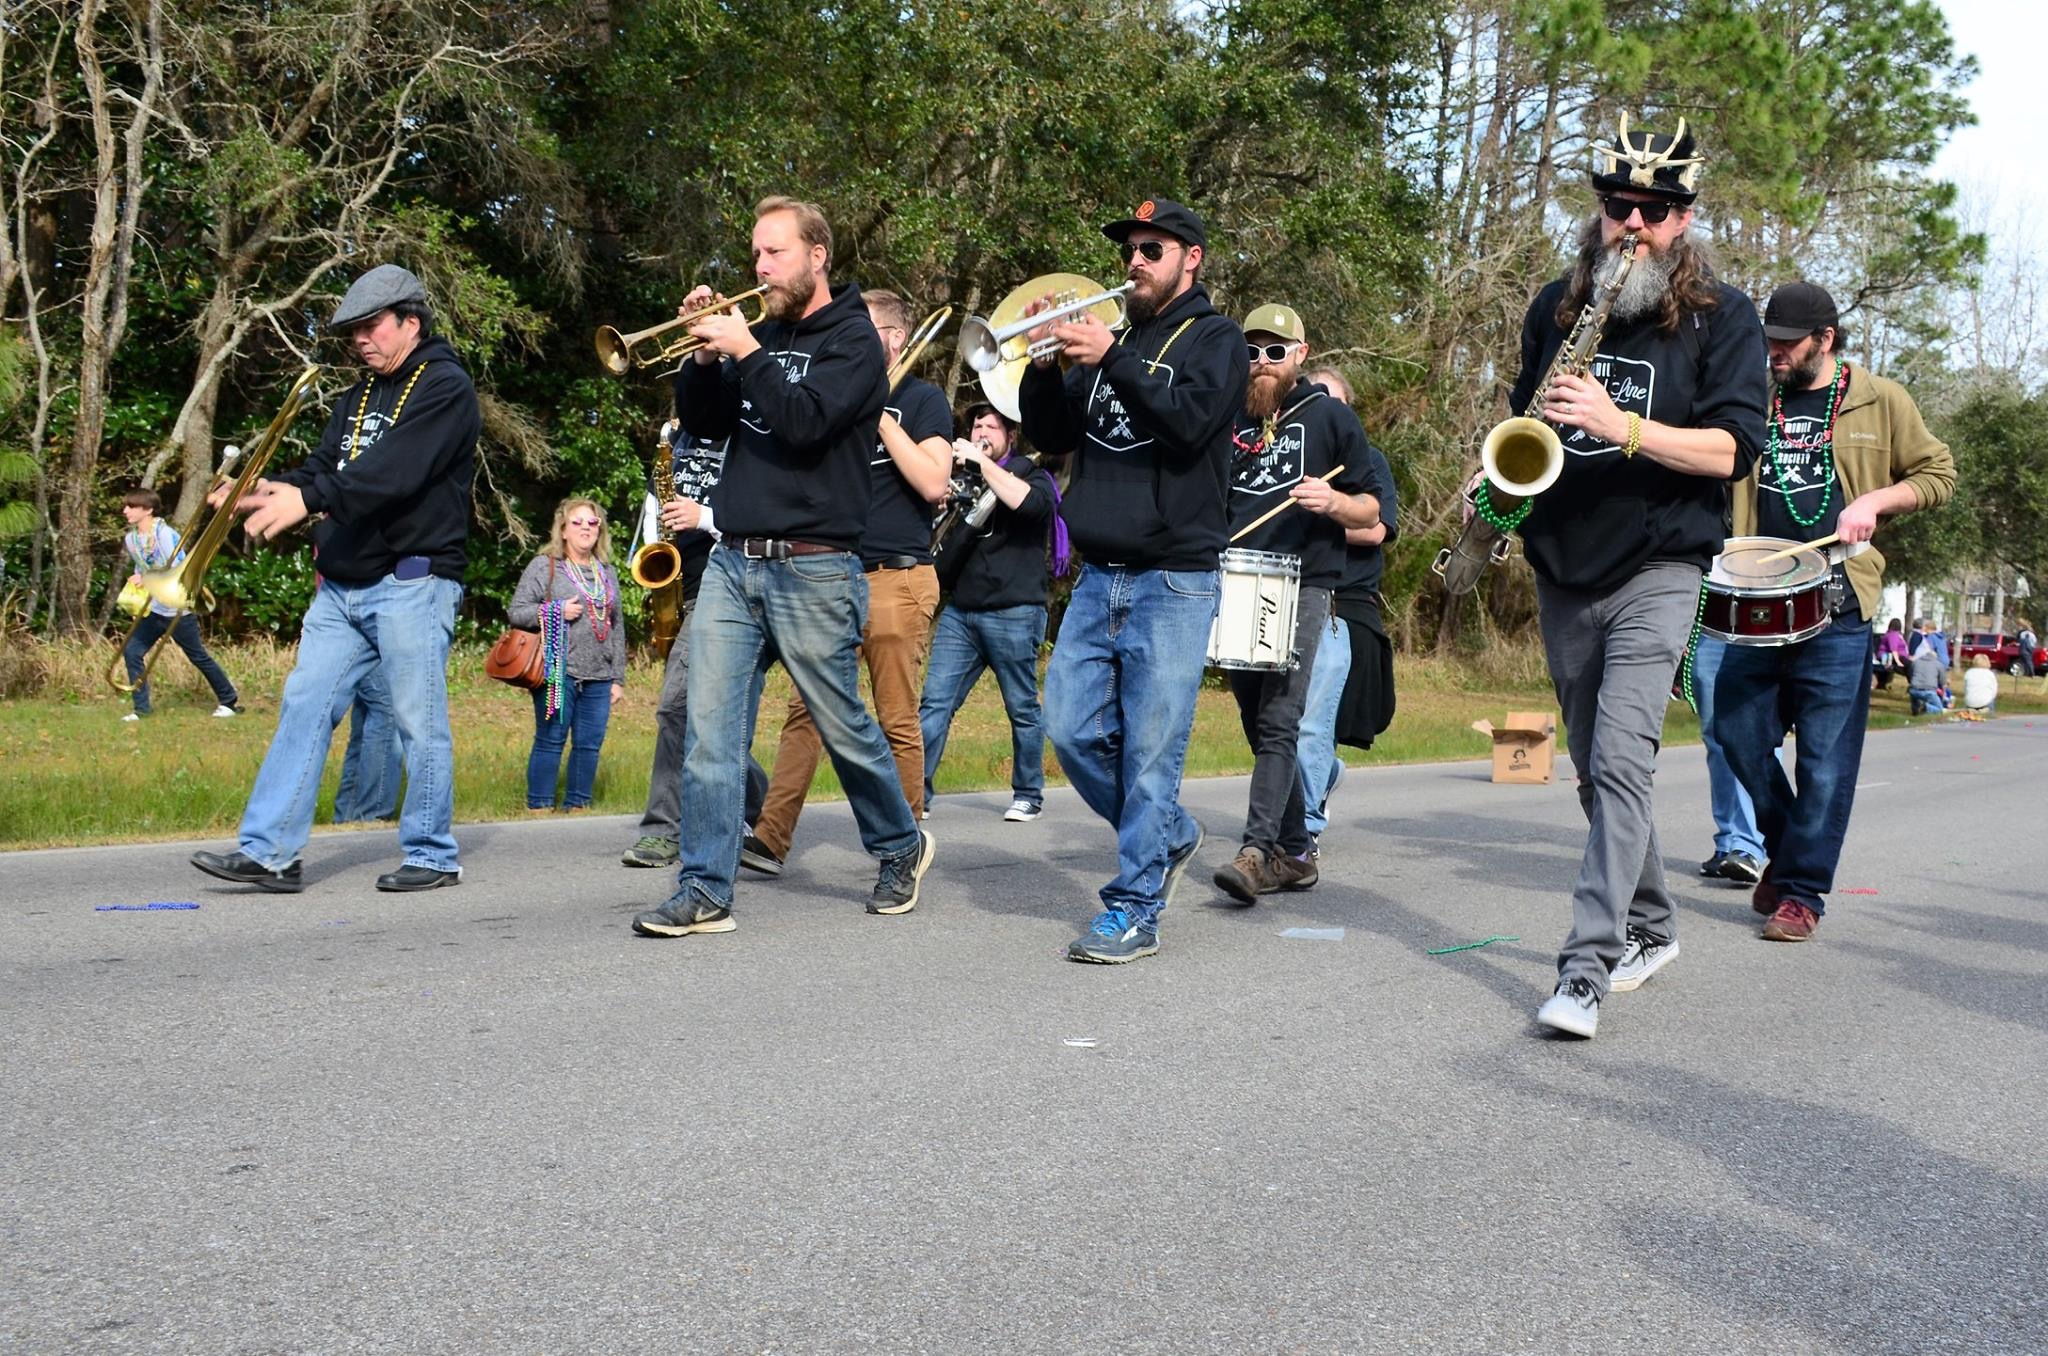 band marches in the mardi gras parade playing music